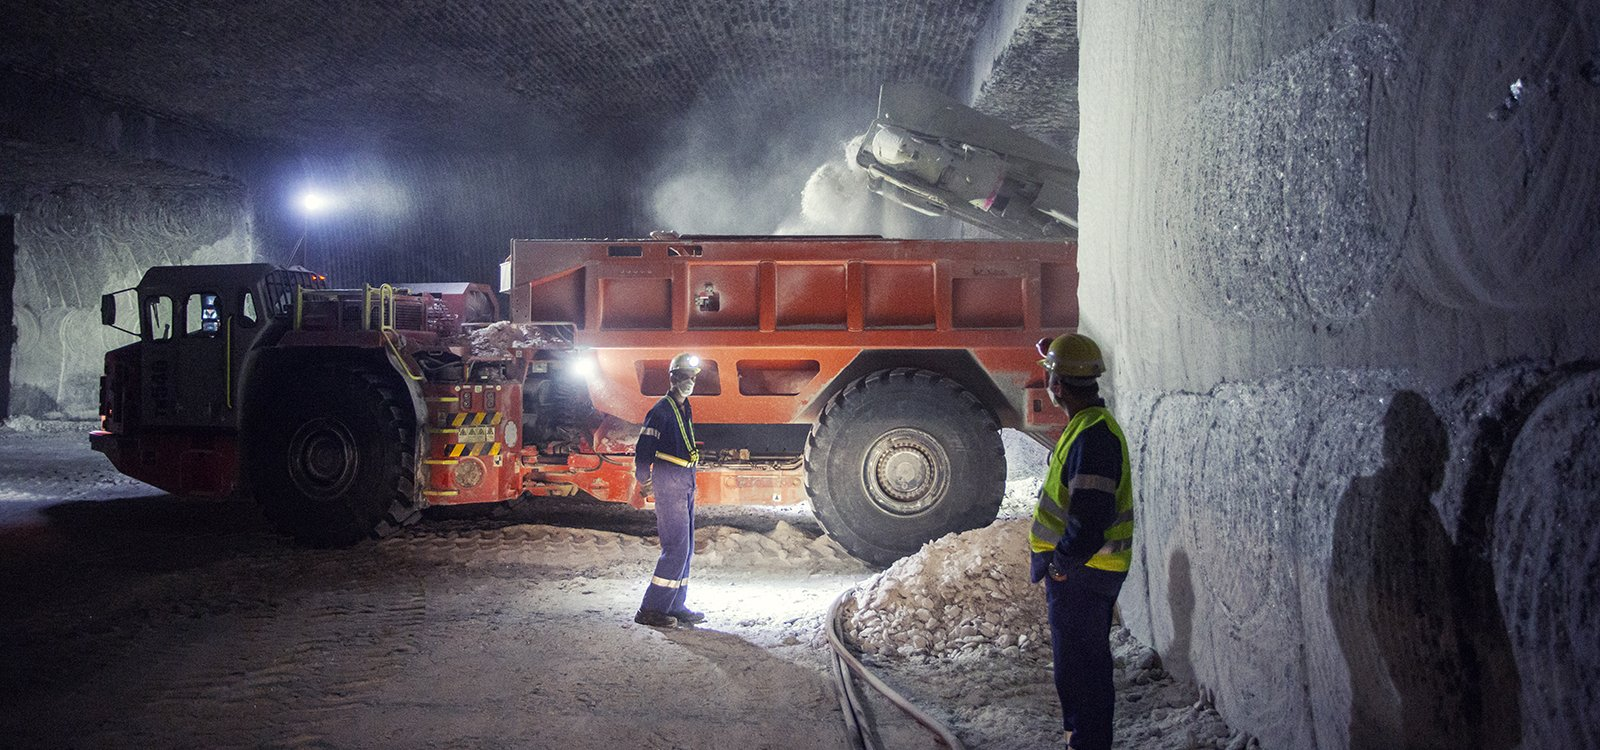 <p>A Sandvik MB770 loads a Sandvik TH540 ejector truck, which hauls the salt to the feed conveyor.</p>